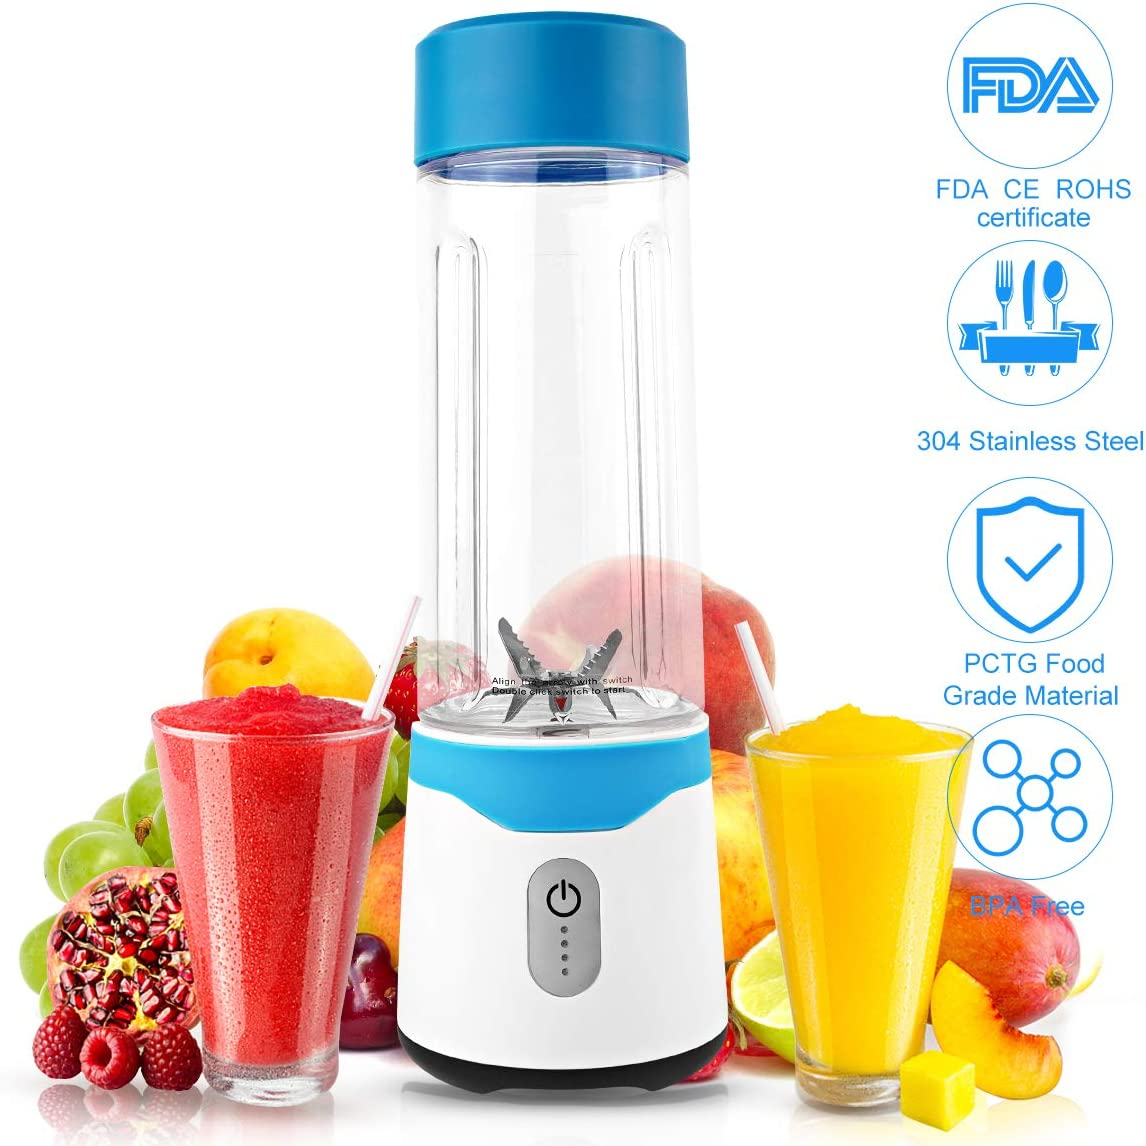 Portable Blender, Portable Blender for Kitchen Shake and Smoothies USB Rechargeable Juicer and Blender in one, with 6 Blades 22000RPM Engine Power BPA-Free by ICARE(Blue)